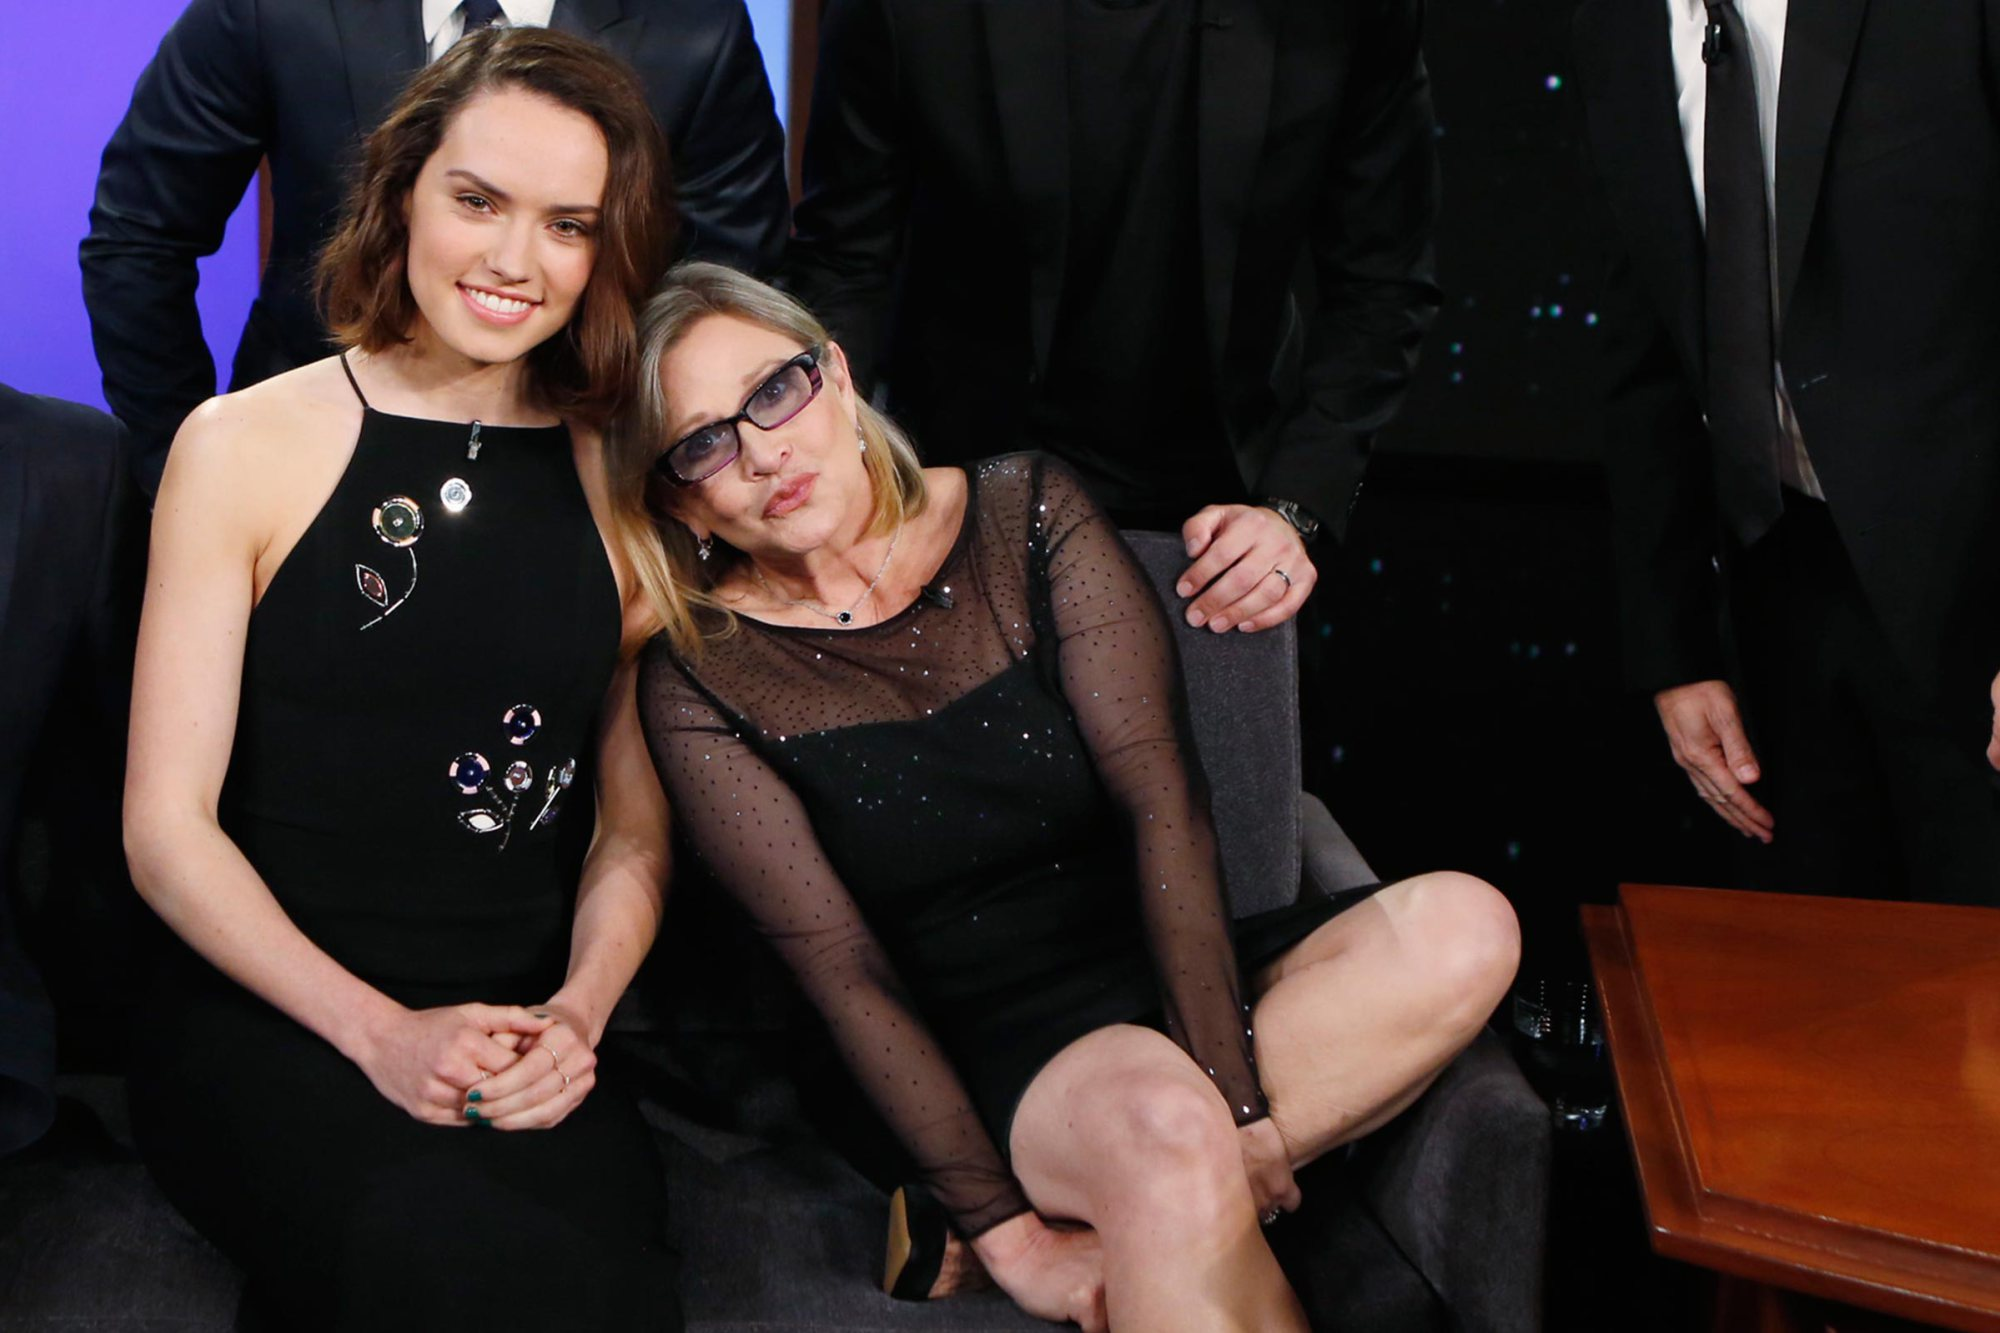 carrie fisher difende un'amica dalle molestie